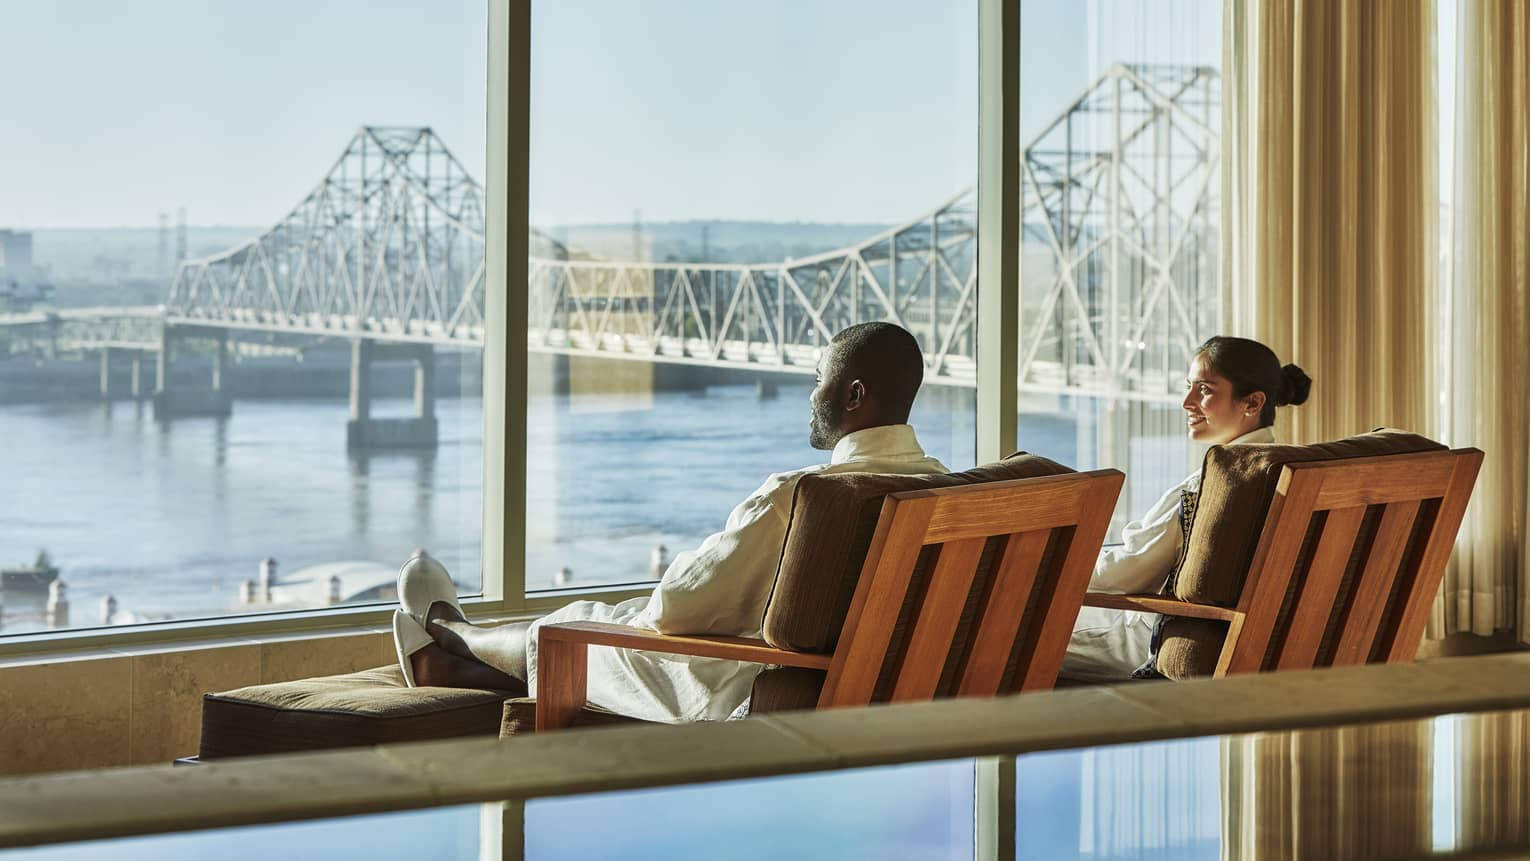 Couple lounge in chairs by large windows overlooking water, St. Louis bridge